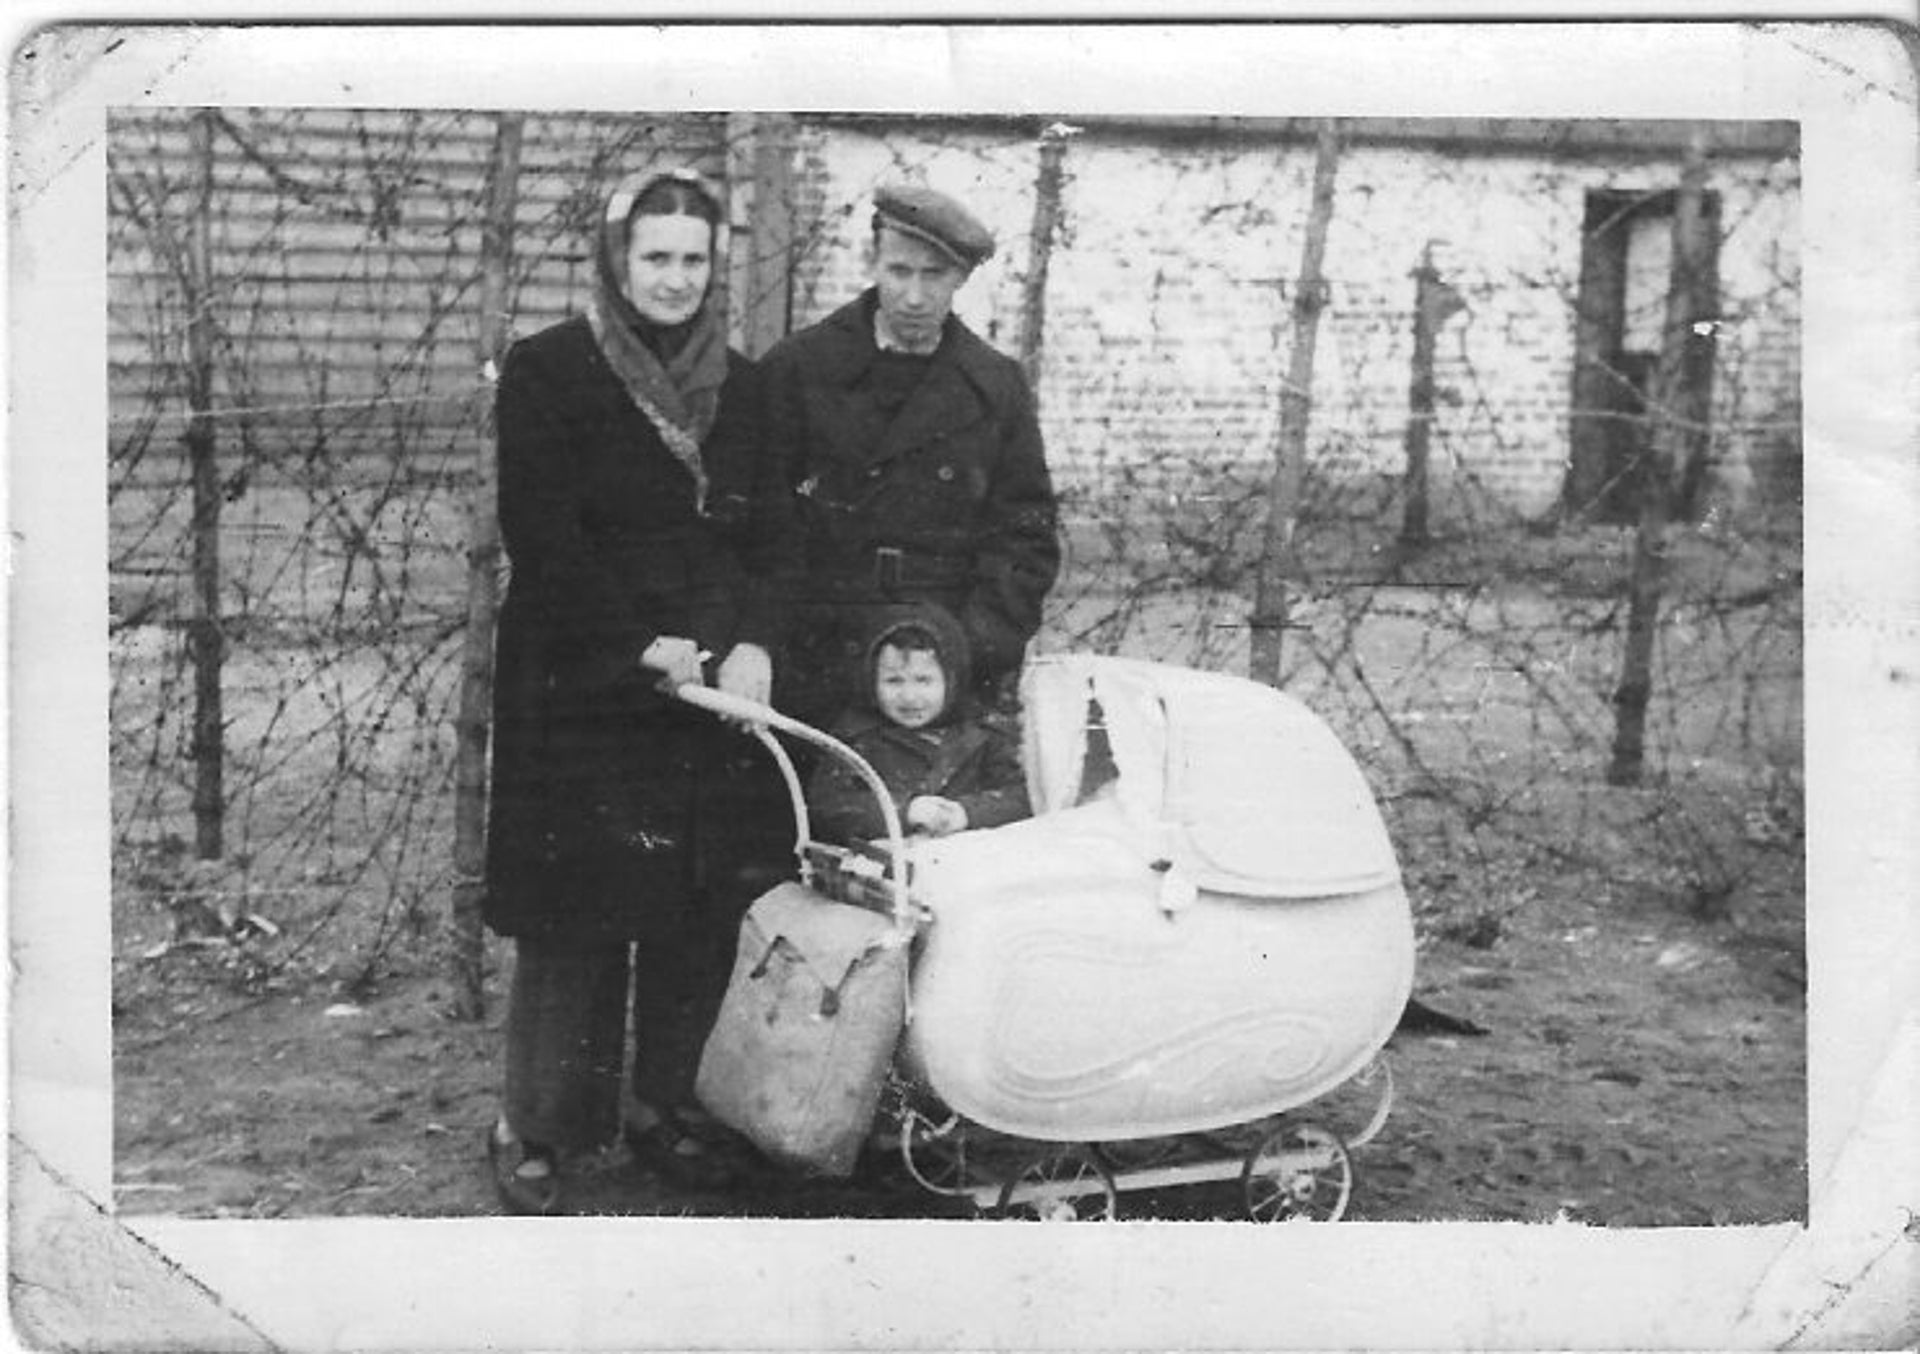 Galia Ashkenazi as a baby with her parents and sister in a German displaced persons camp, 1947.